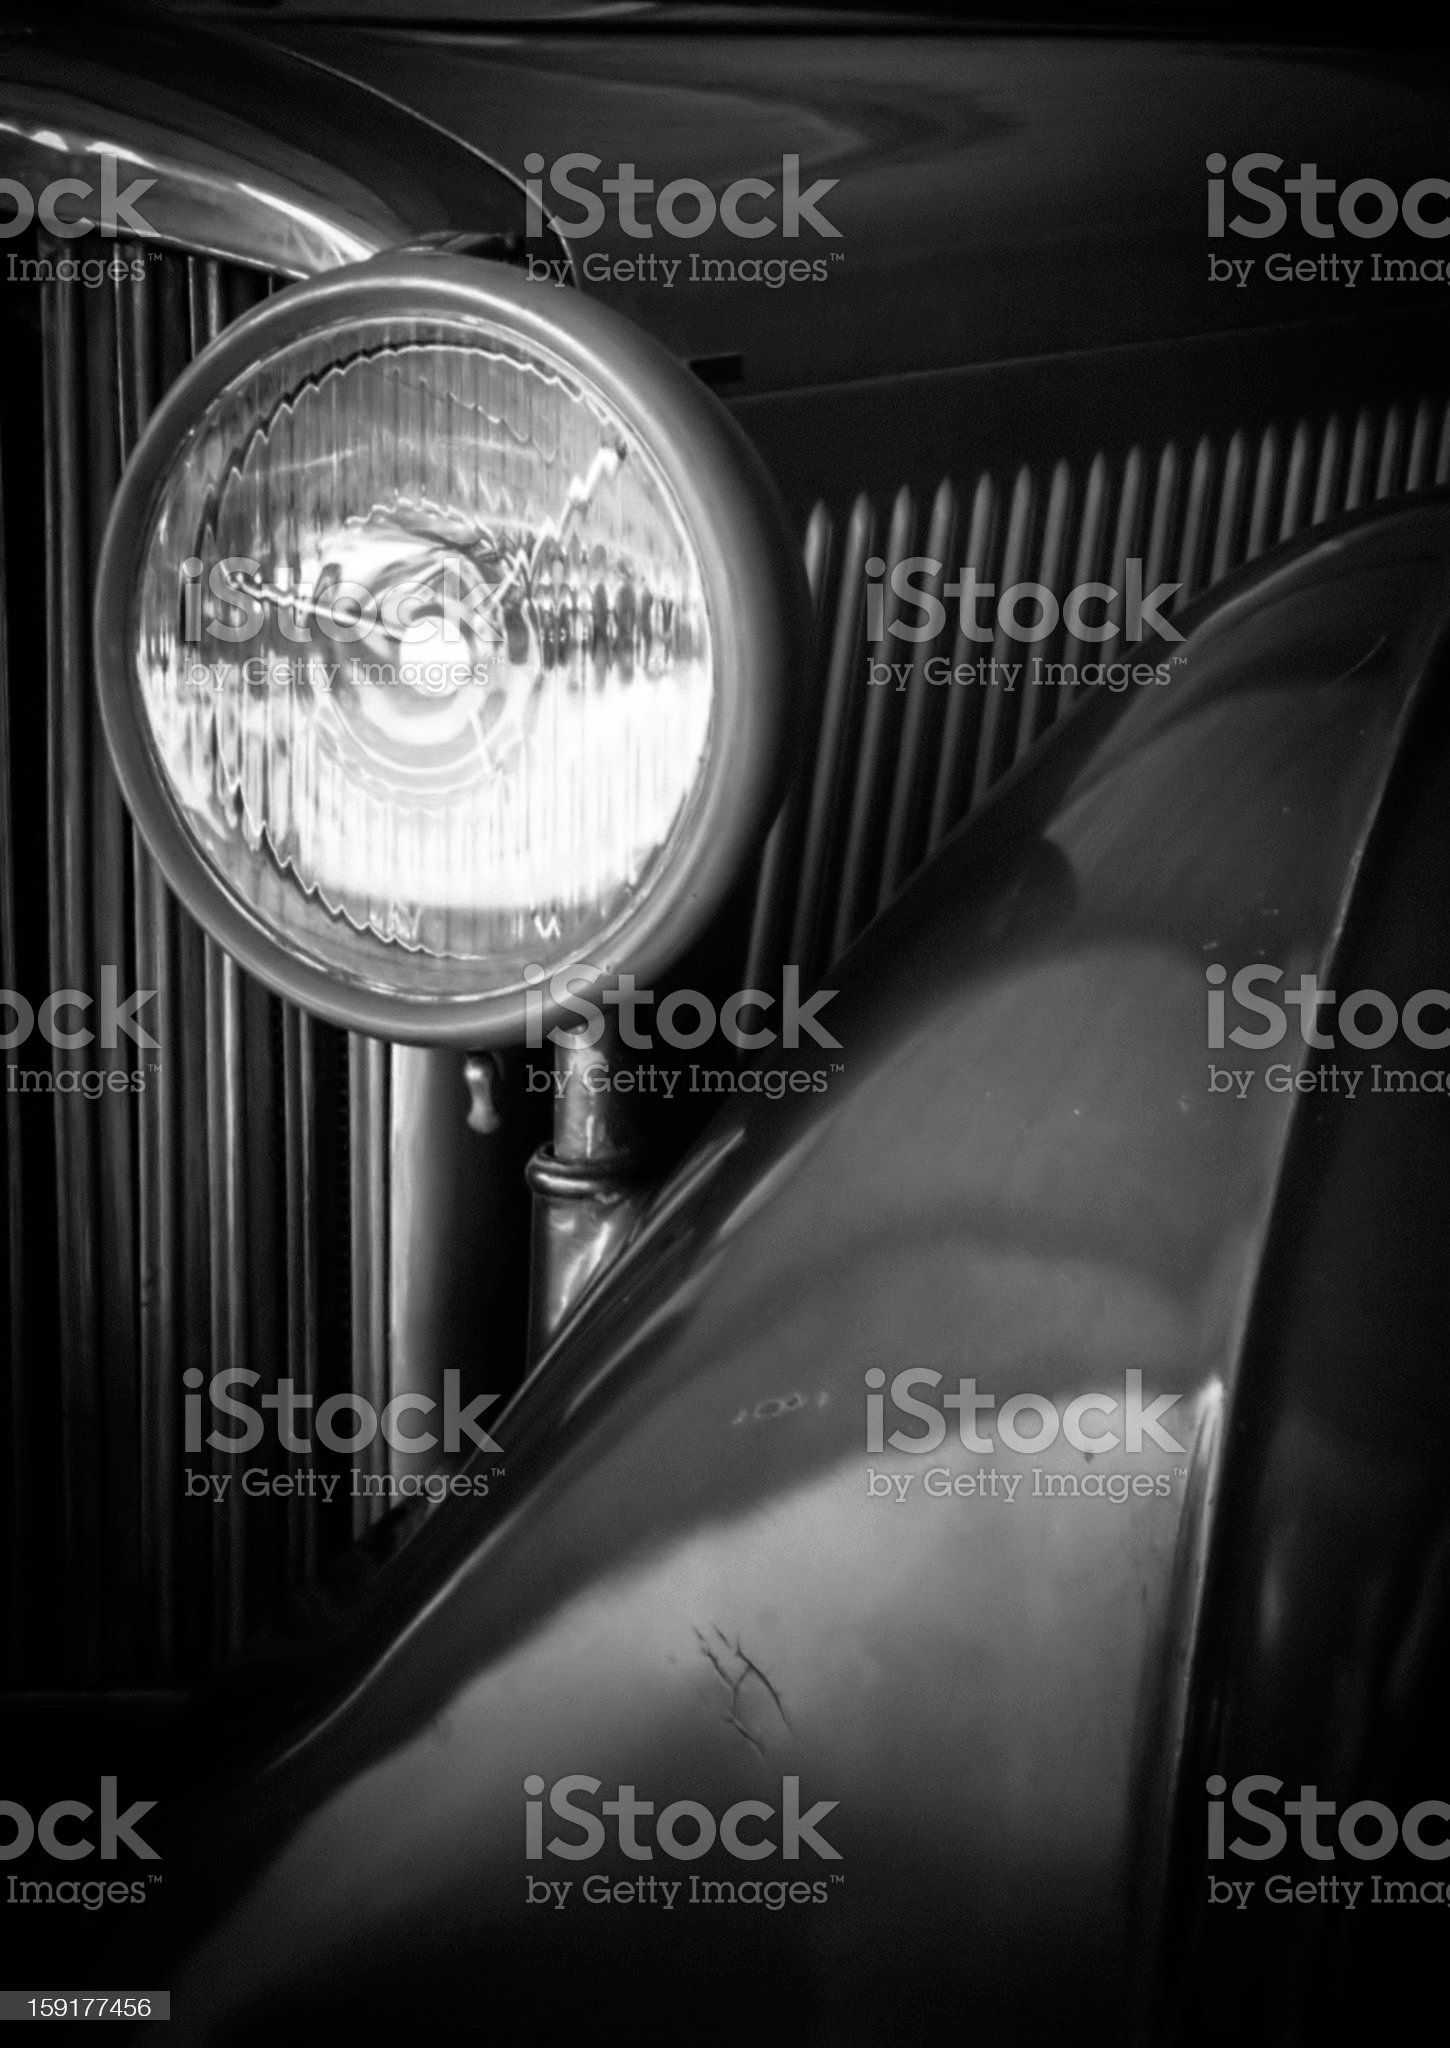 Vintage Car Headlight Detail royalty-free stock photo